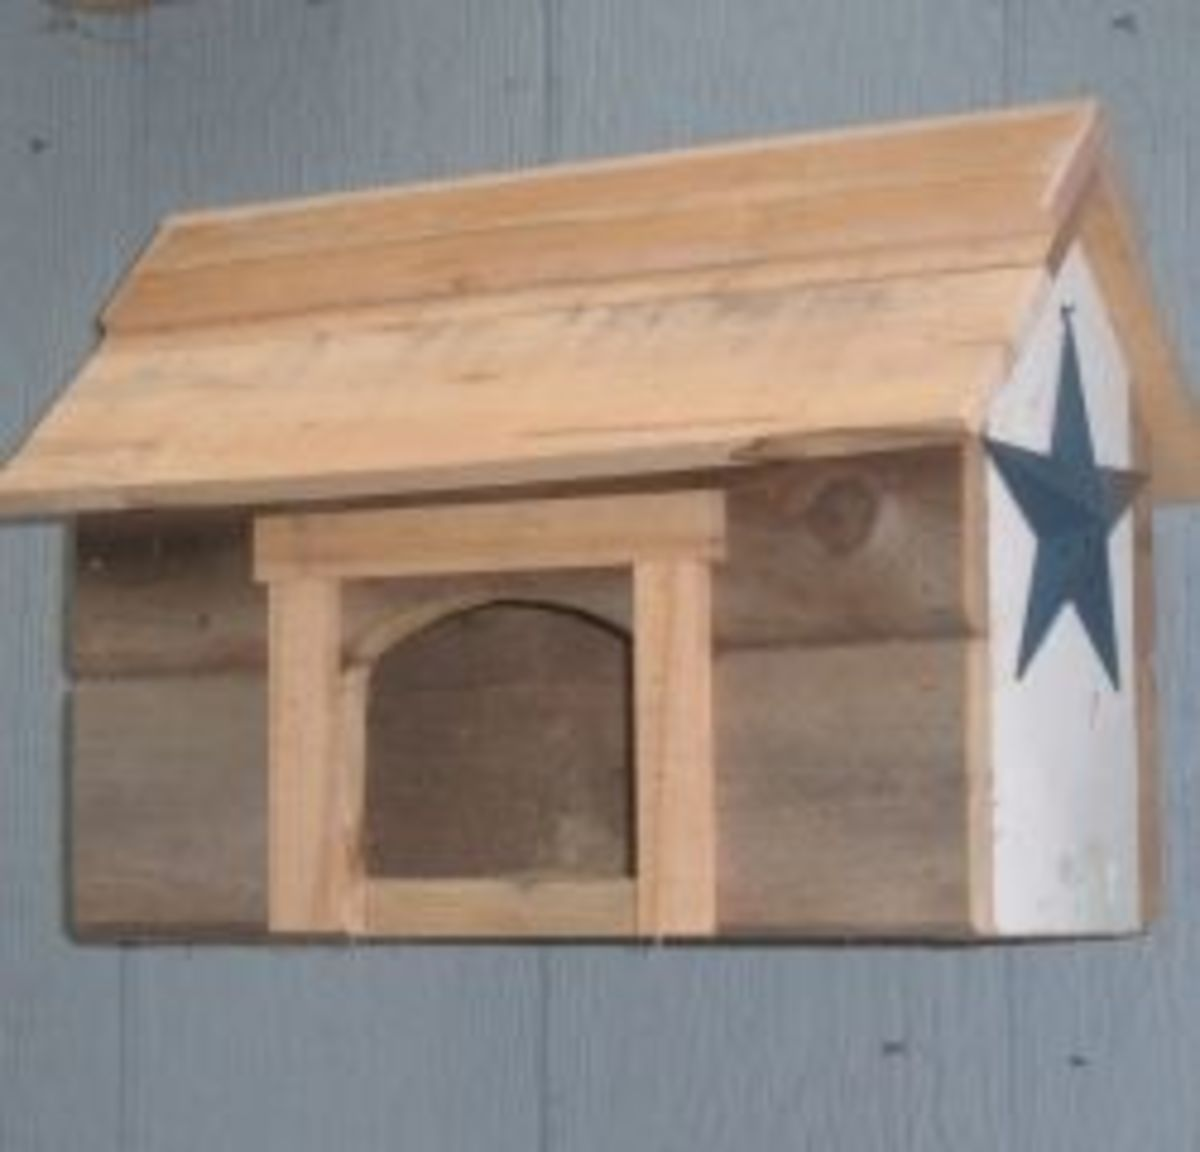 Rustic Birdhouse Ideas: How to Use Salvaged Wood, Reclaimed Lumber, and Old Pallets